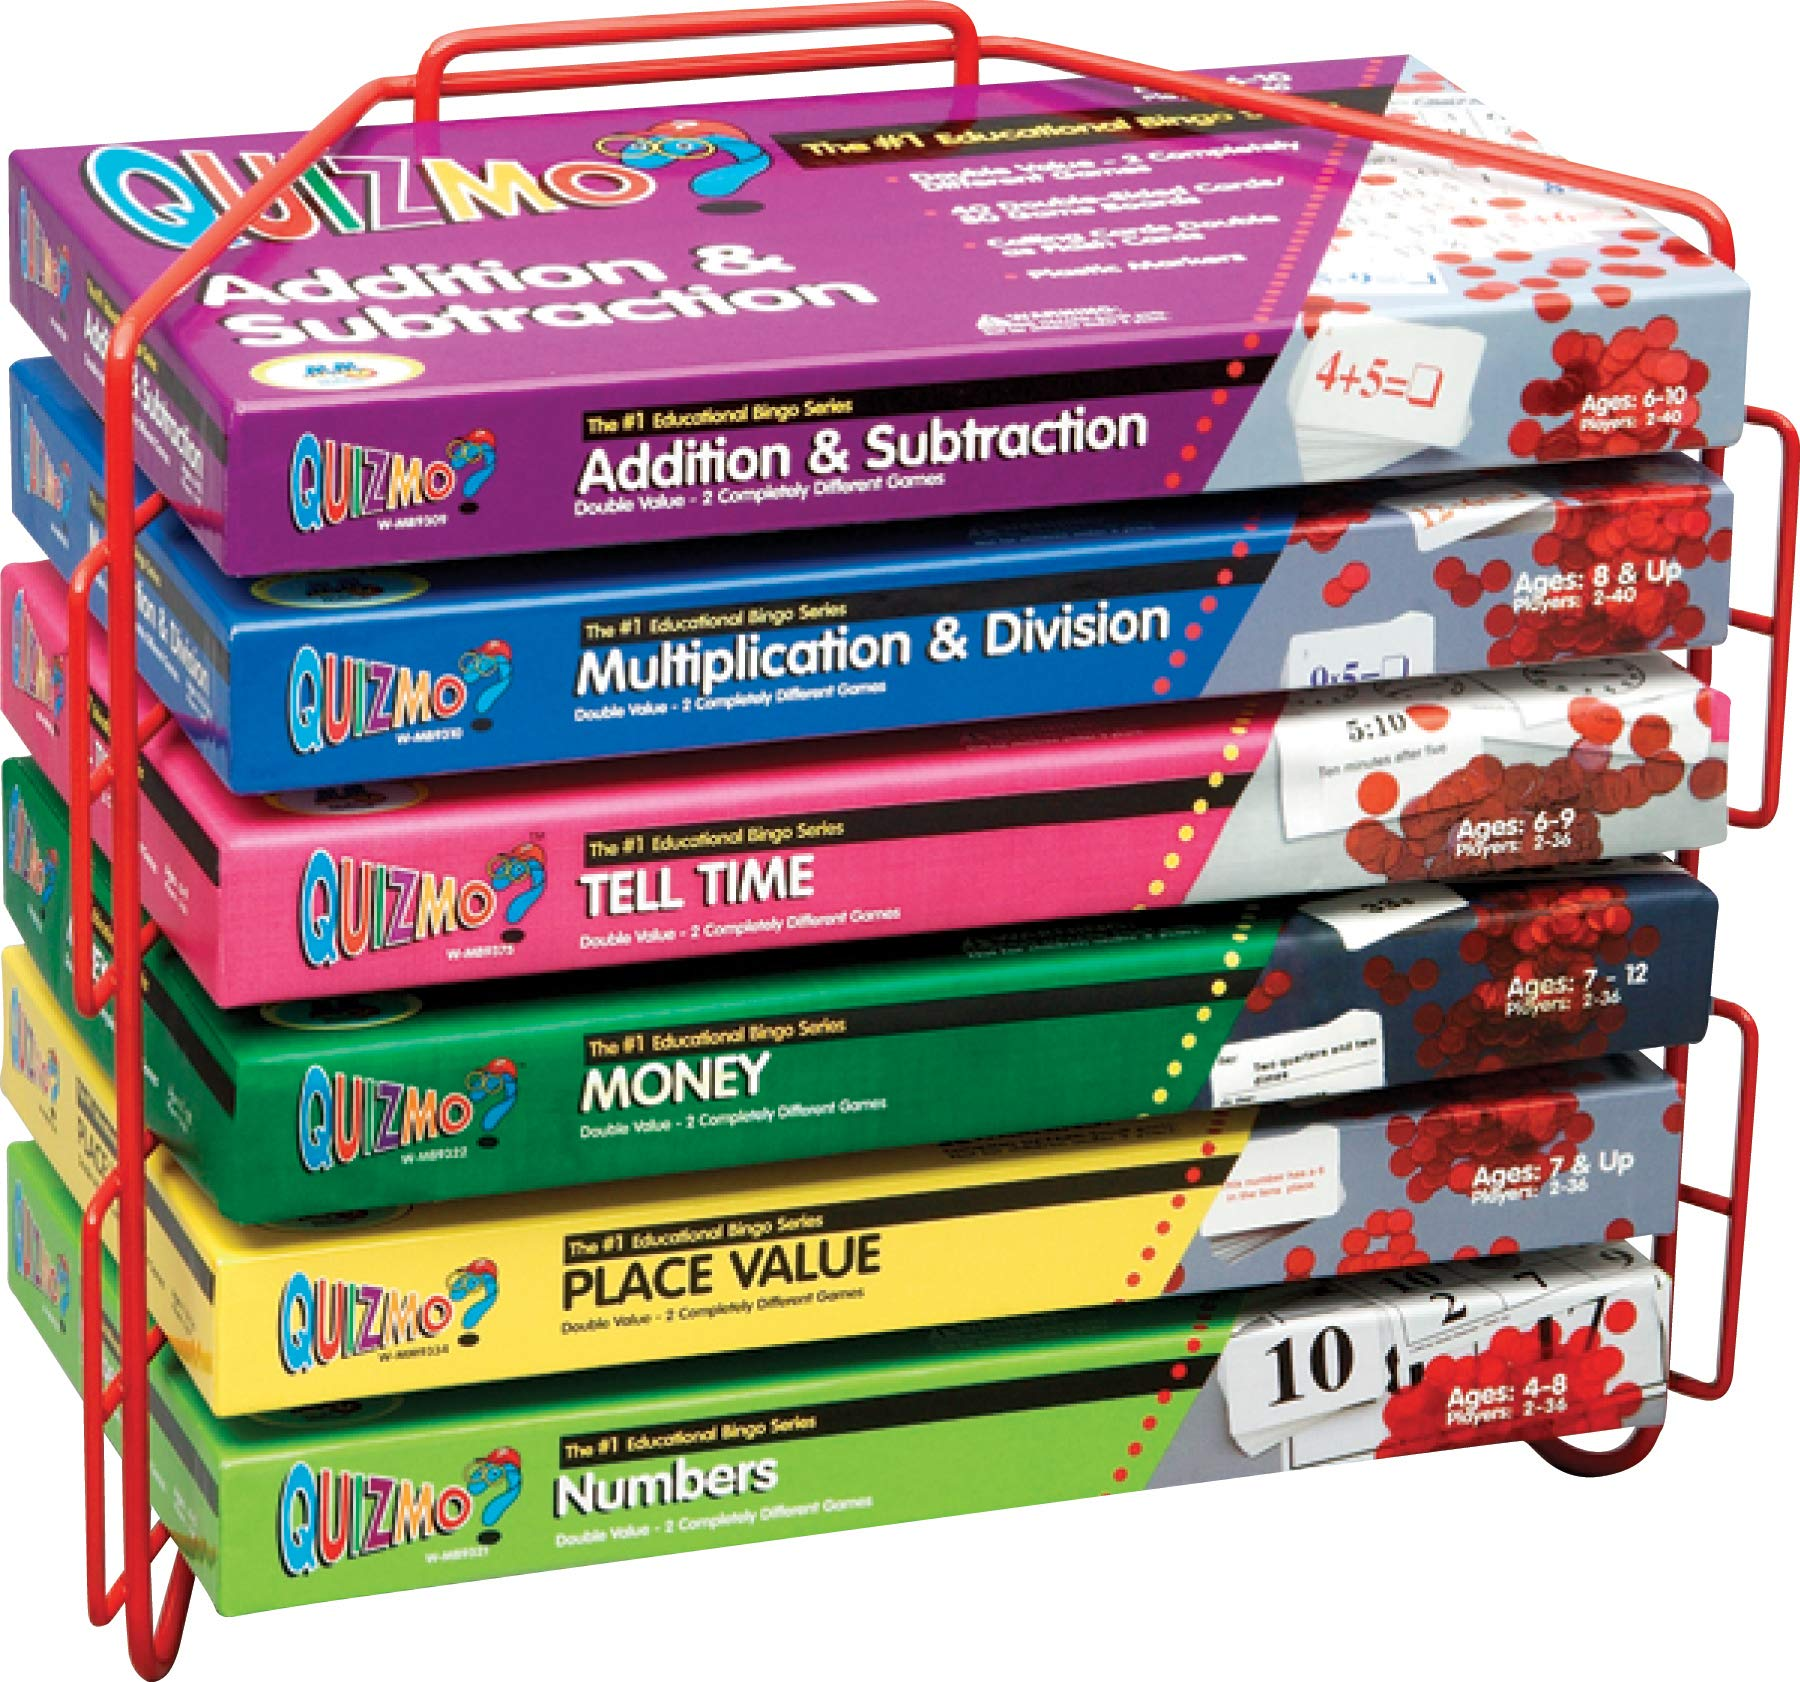 Learning Advantage QUIZMO Elementary Math Series - Set of 6 Bingo-Style Games for Kids - Beginner Math - Teach Addition, Subtraction Multiplication, Division, Time, Money and Place Value by Learning Advantage